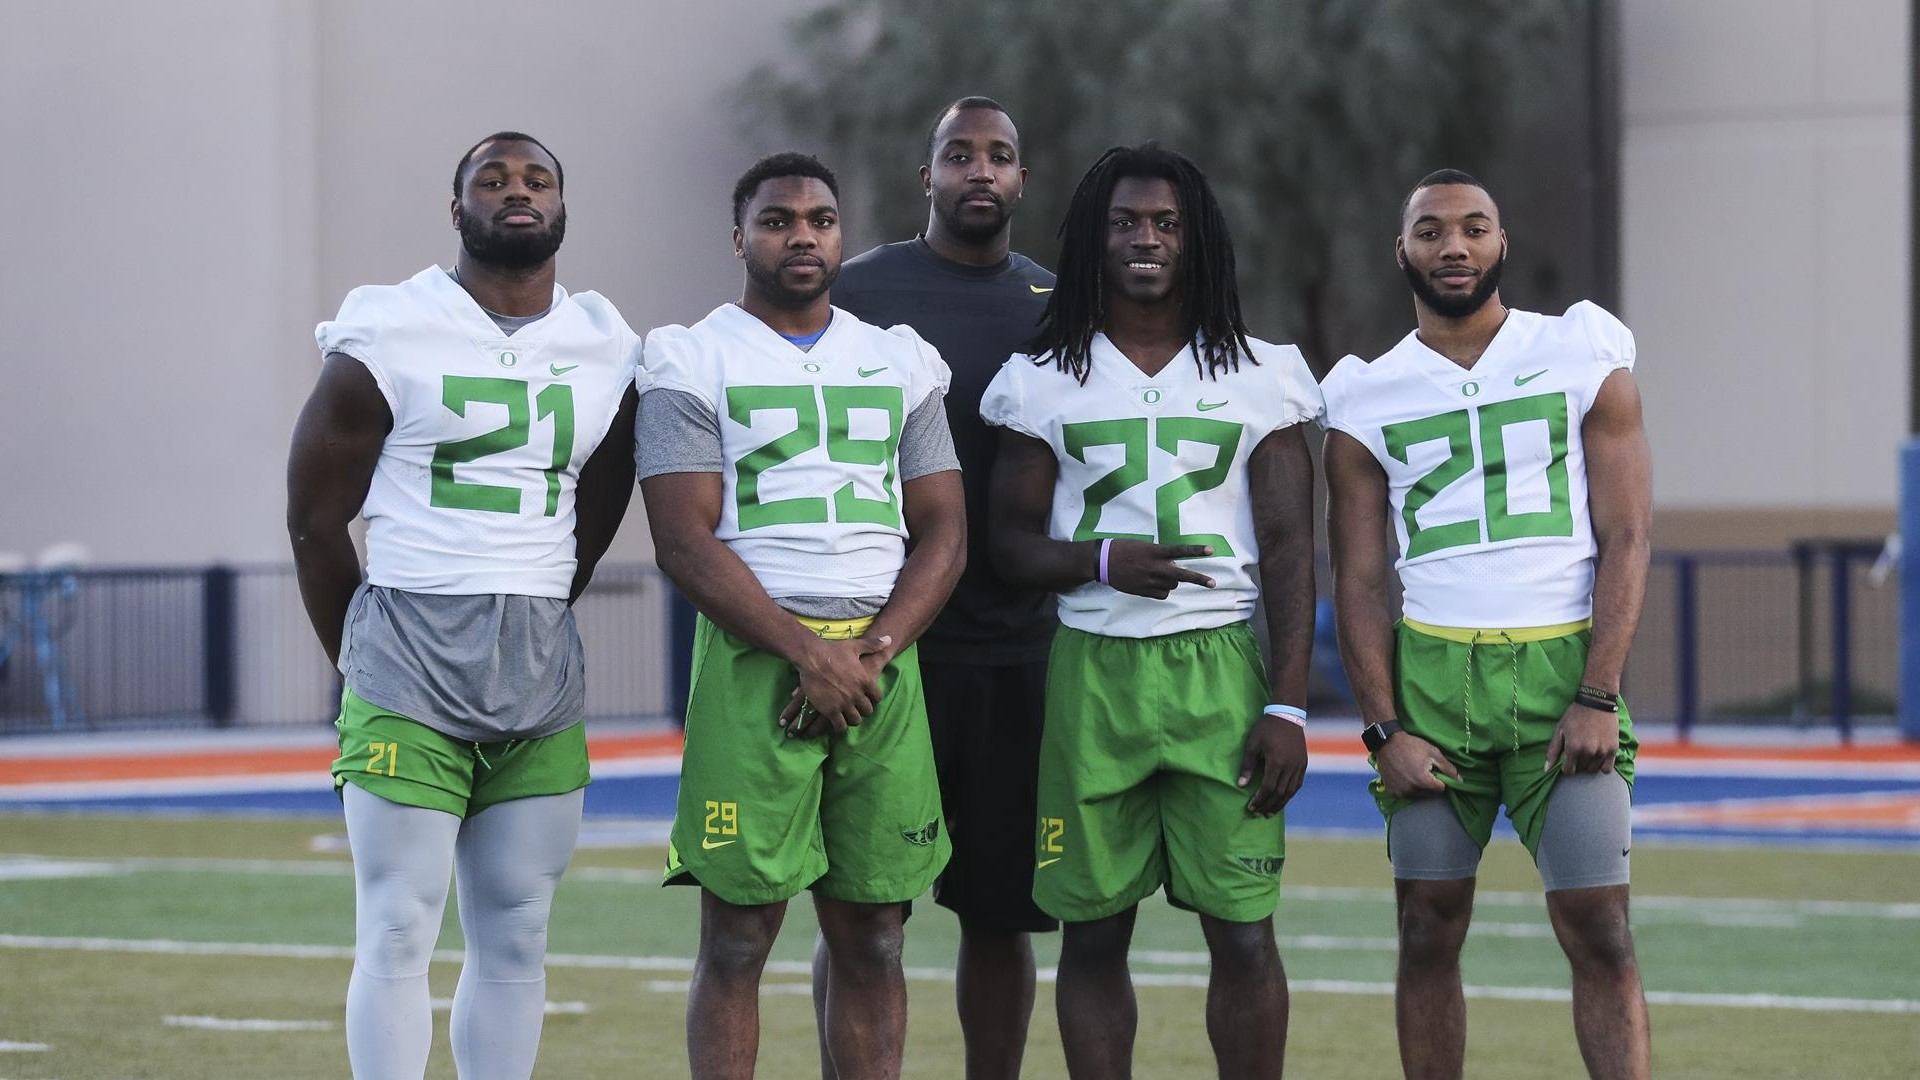 Stable Of Backs Ready To Step Up - Oregon, University of